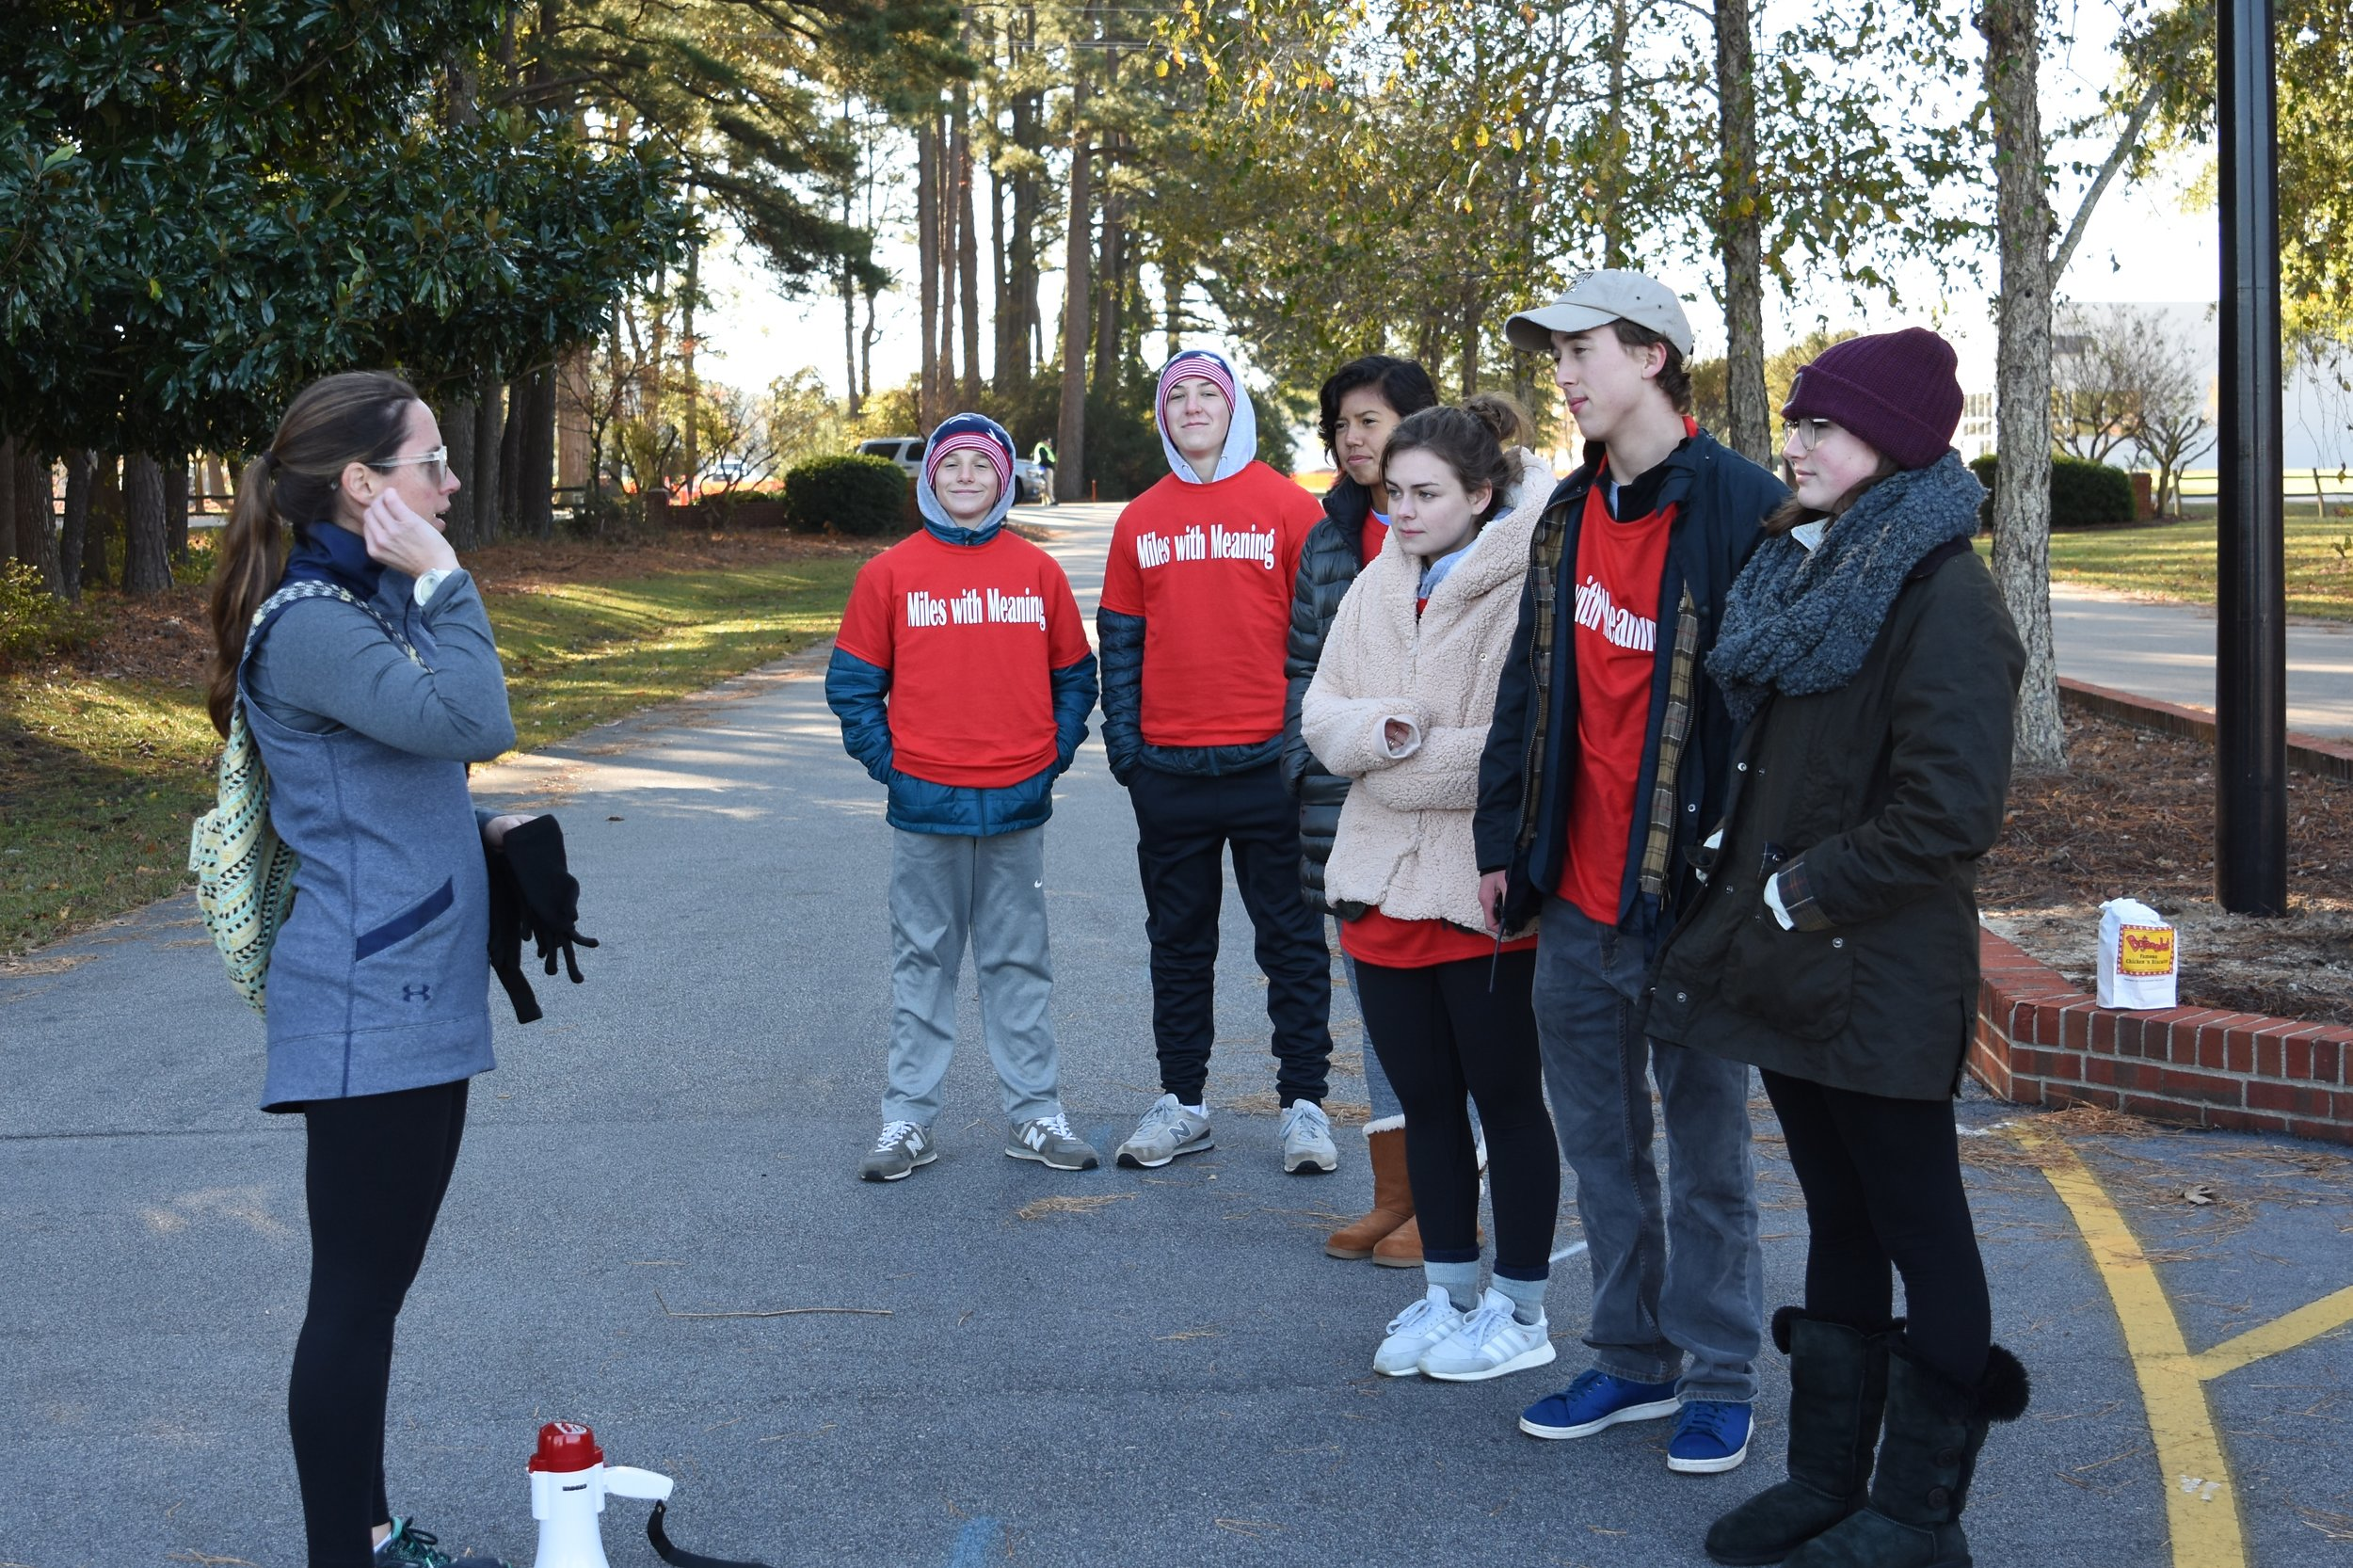 Photo caption: APA teacher and race coordinator Leslie Lewis deploys student volunteers, from left, Matt Wheelis, Morgan McPhaul, Erika Gorrin-Rivas, Sybil Sides, Jeff Bland, and Drew Dacey.